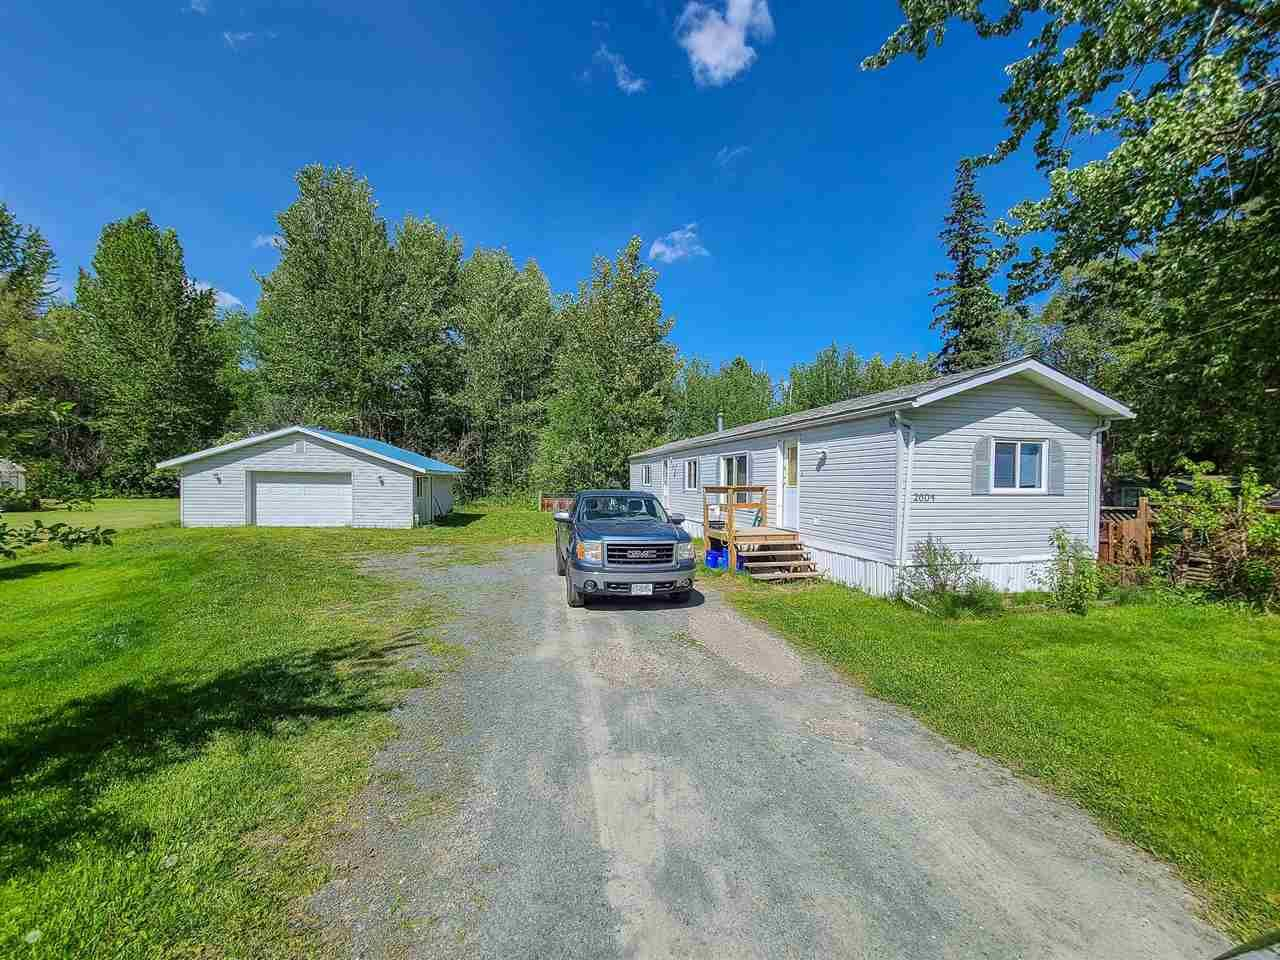 """Main Photo: 2604 MINOTTI Drive in Prince George: Hart Highway Manufactured Home for sale in """"HART HIGHWAY"""" (PG City North (Zone 73))  : MLS®# R2589076"""